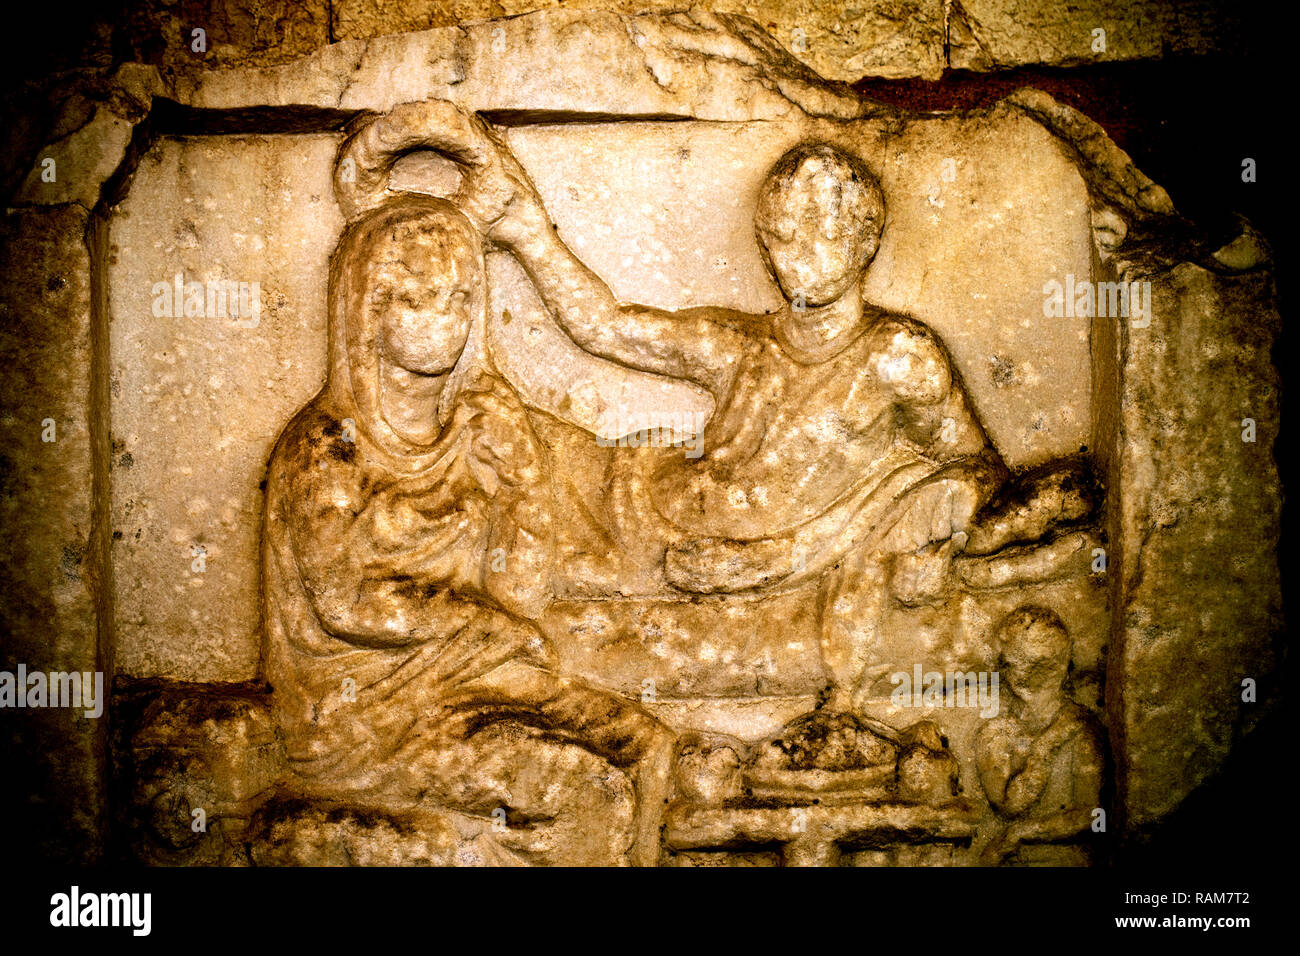 Historical Antique Greek Marble Art Photos High Detailed Stock Photo